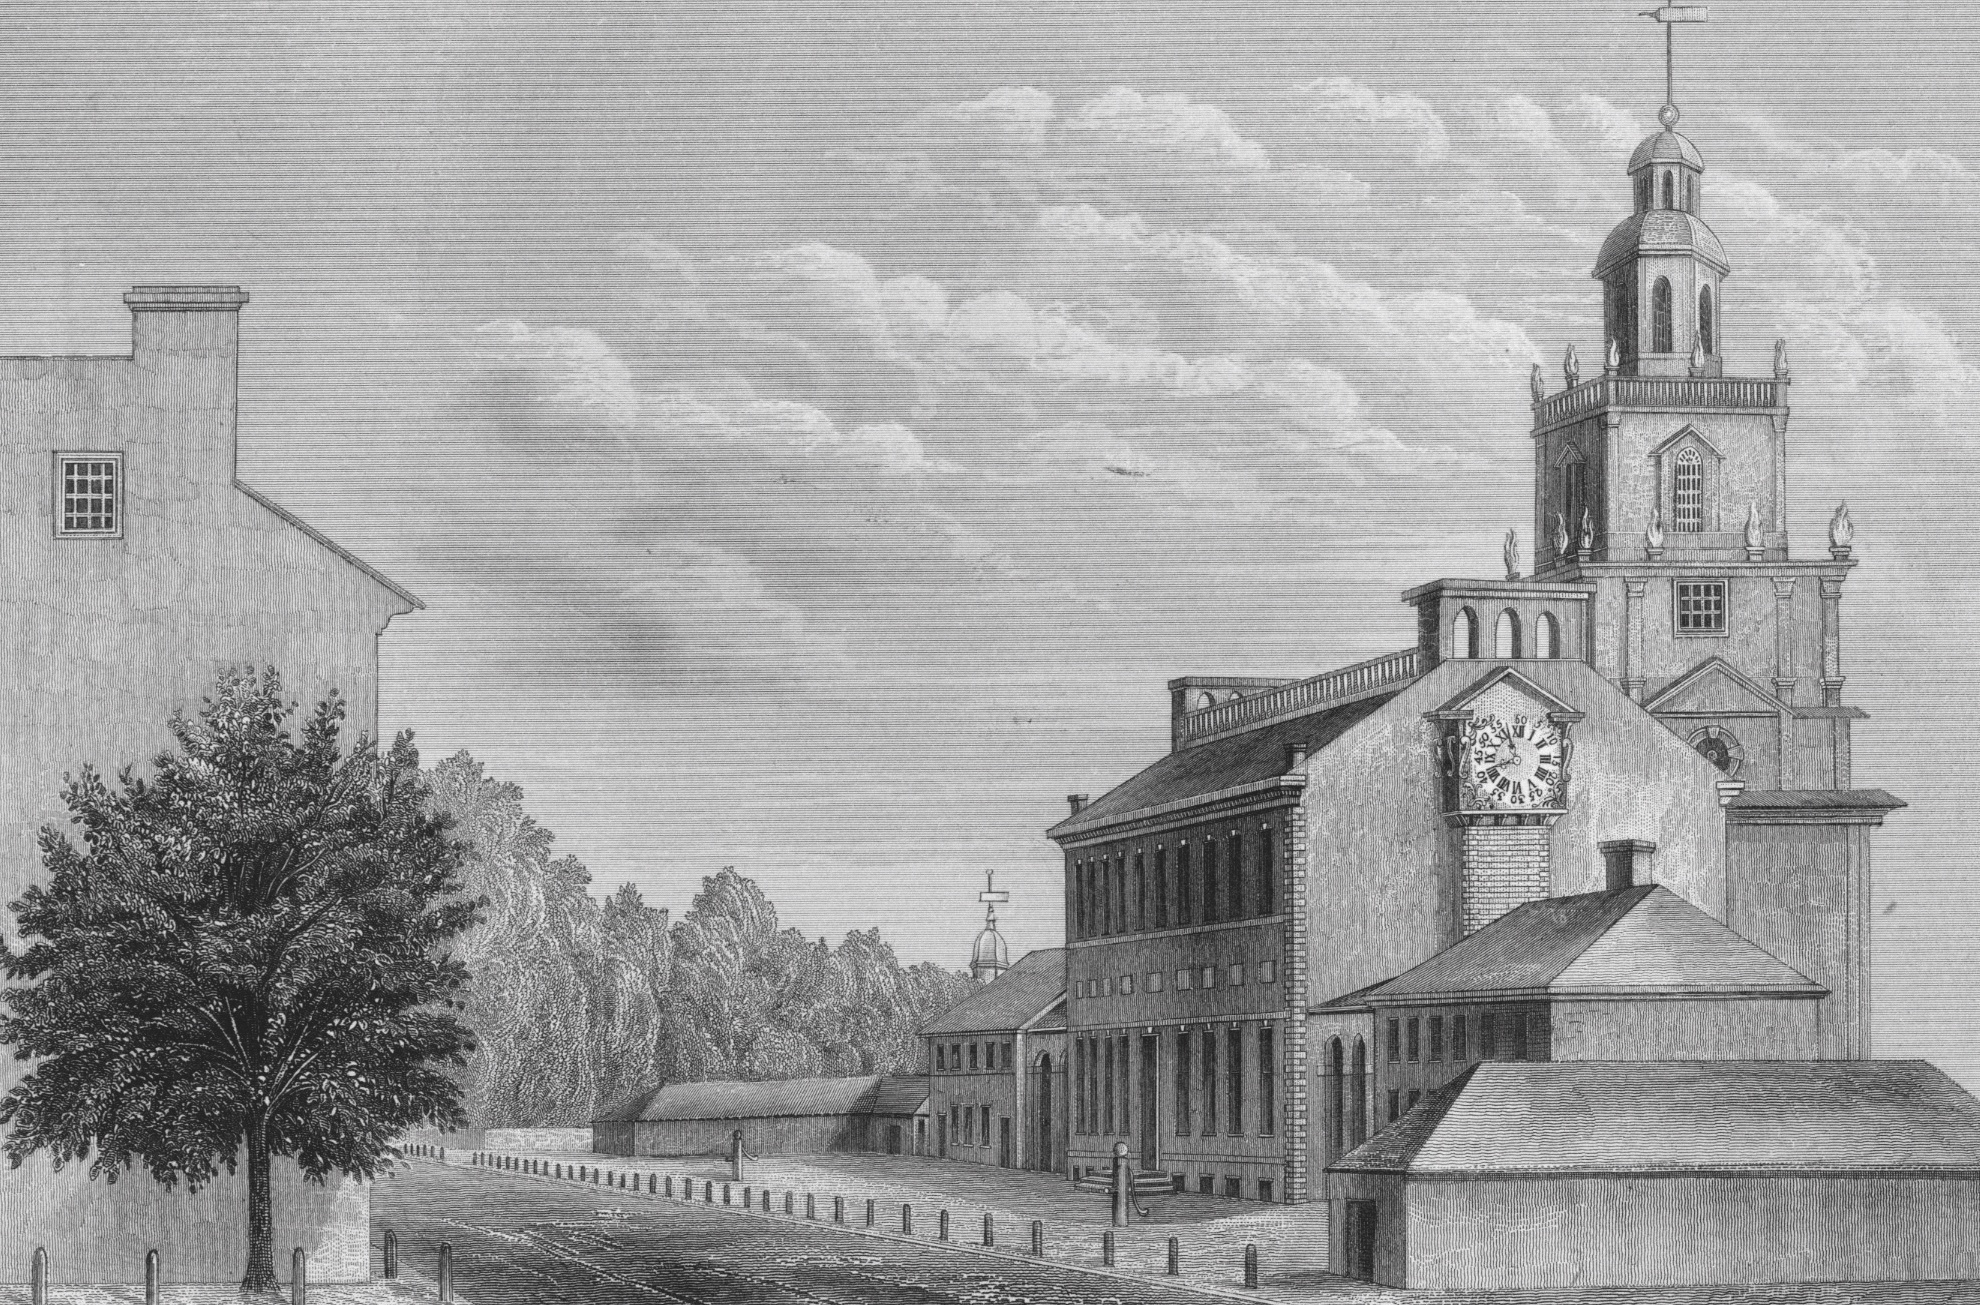 Charles Peale, State House (Philadelphie), gravure, 1876